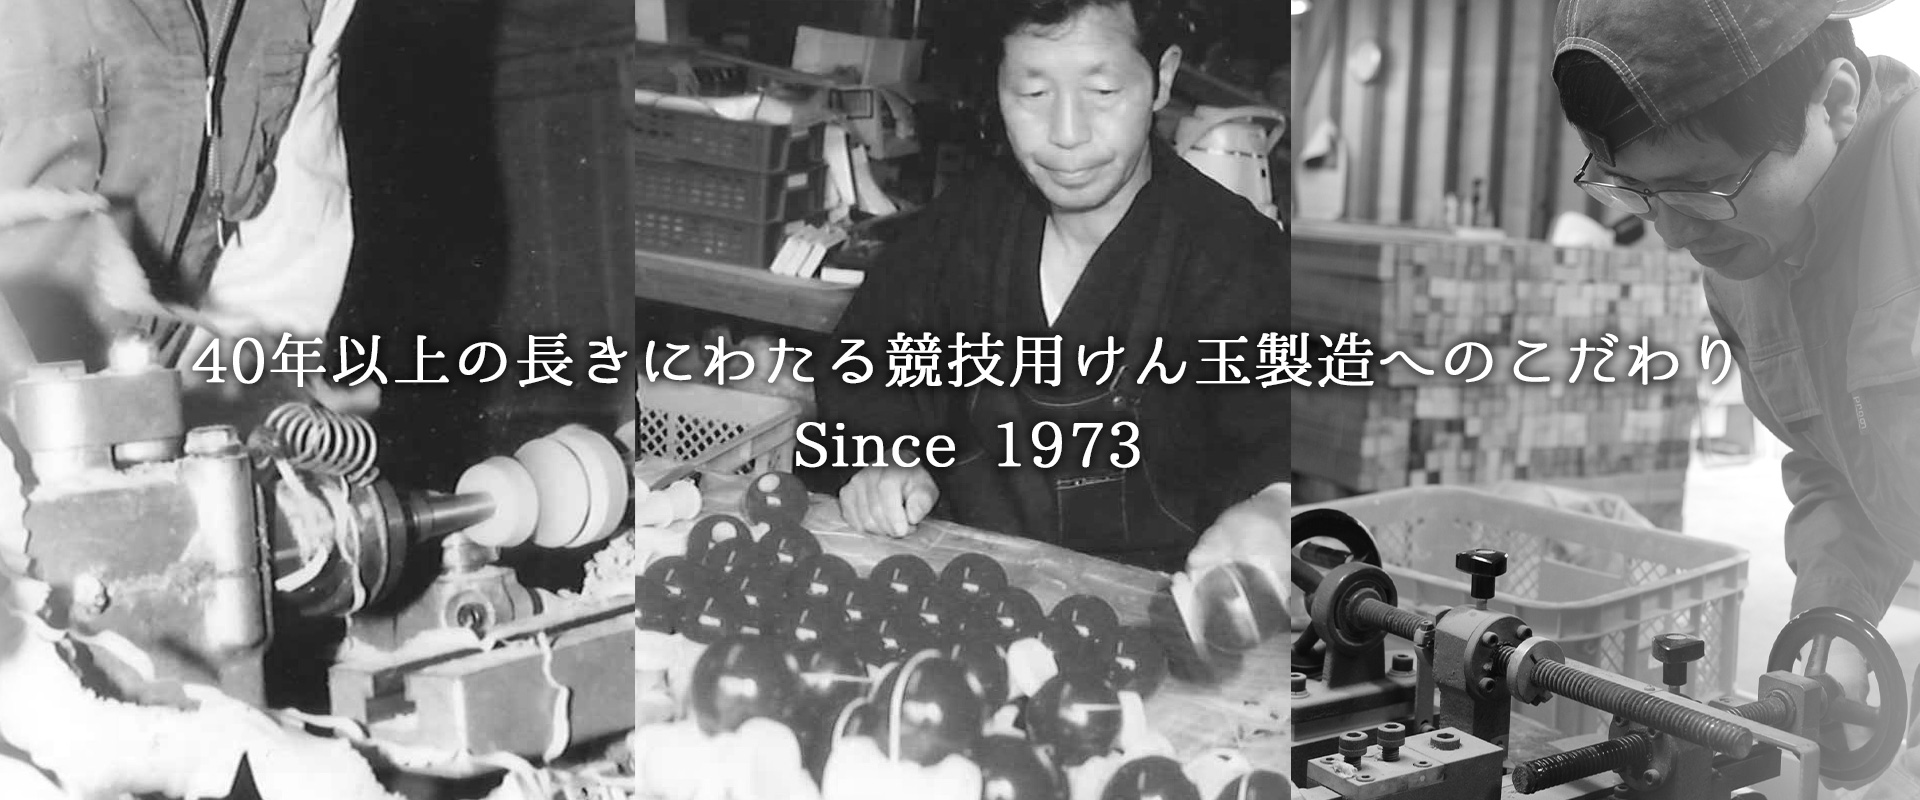 Dedicated to manufacturing of official Kendamas for over 40 years Since 1973